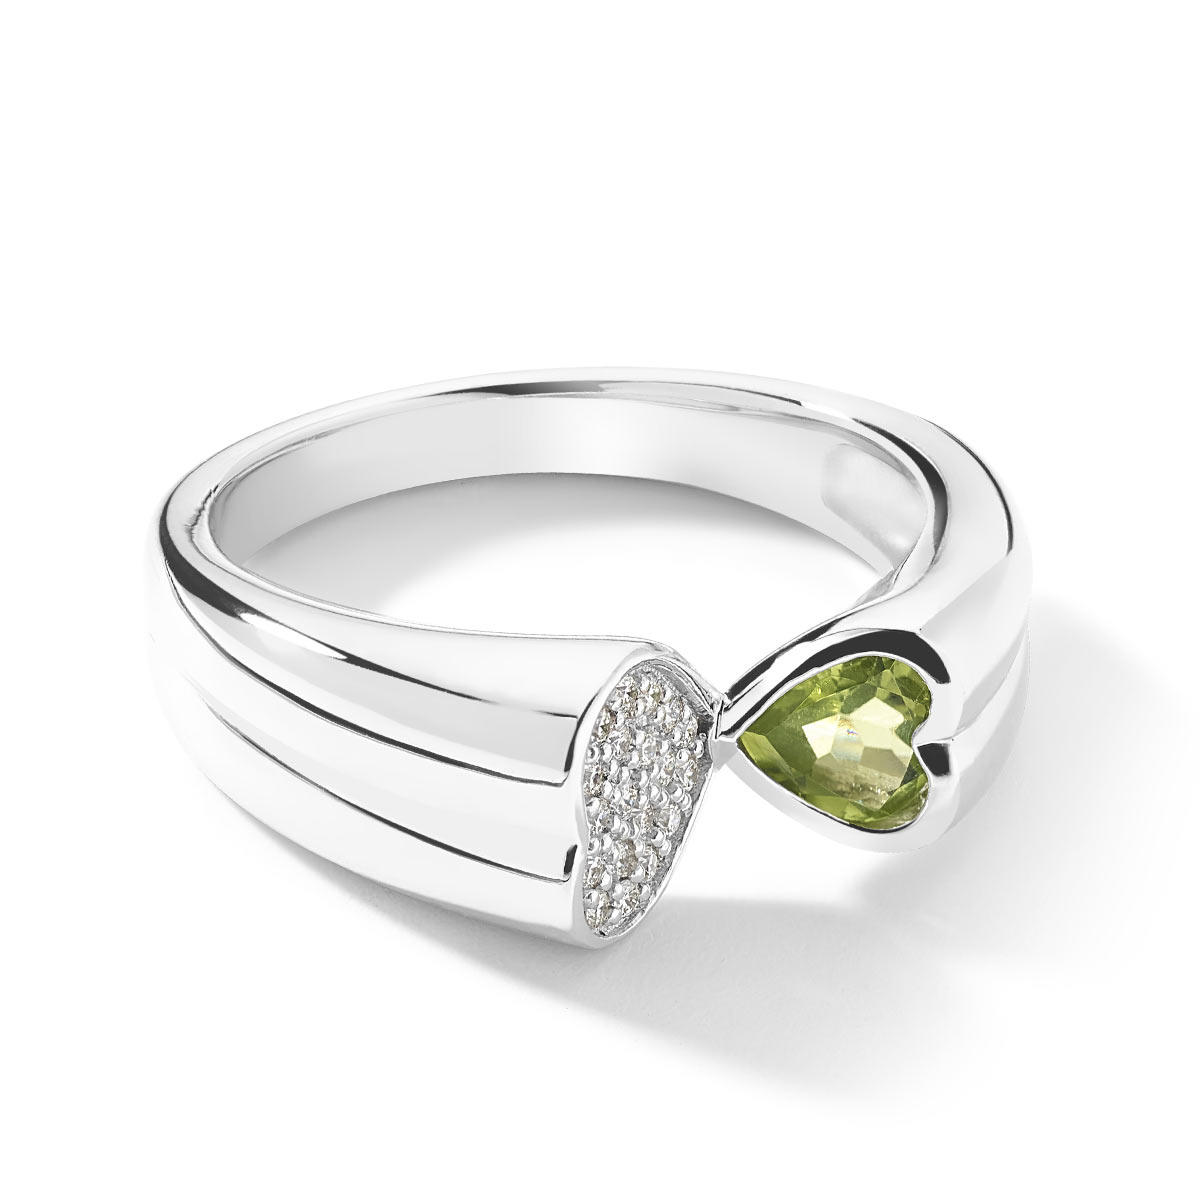 Bague or blanc 750 peridot diamants